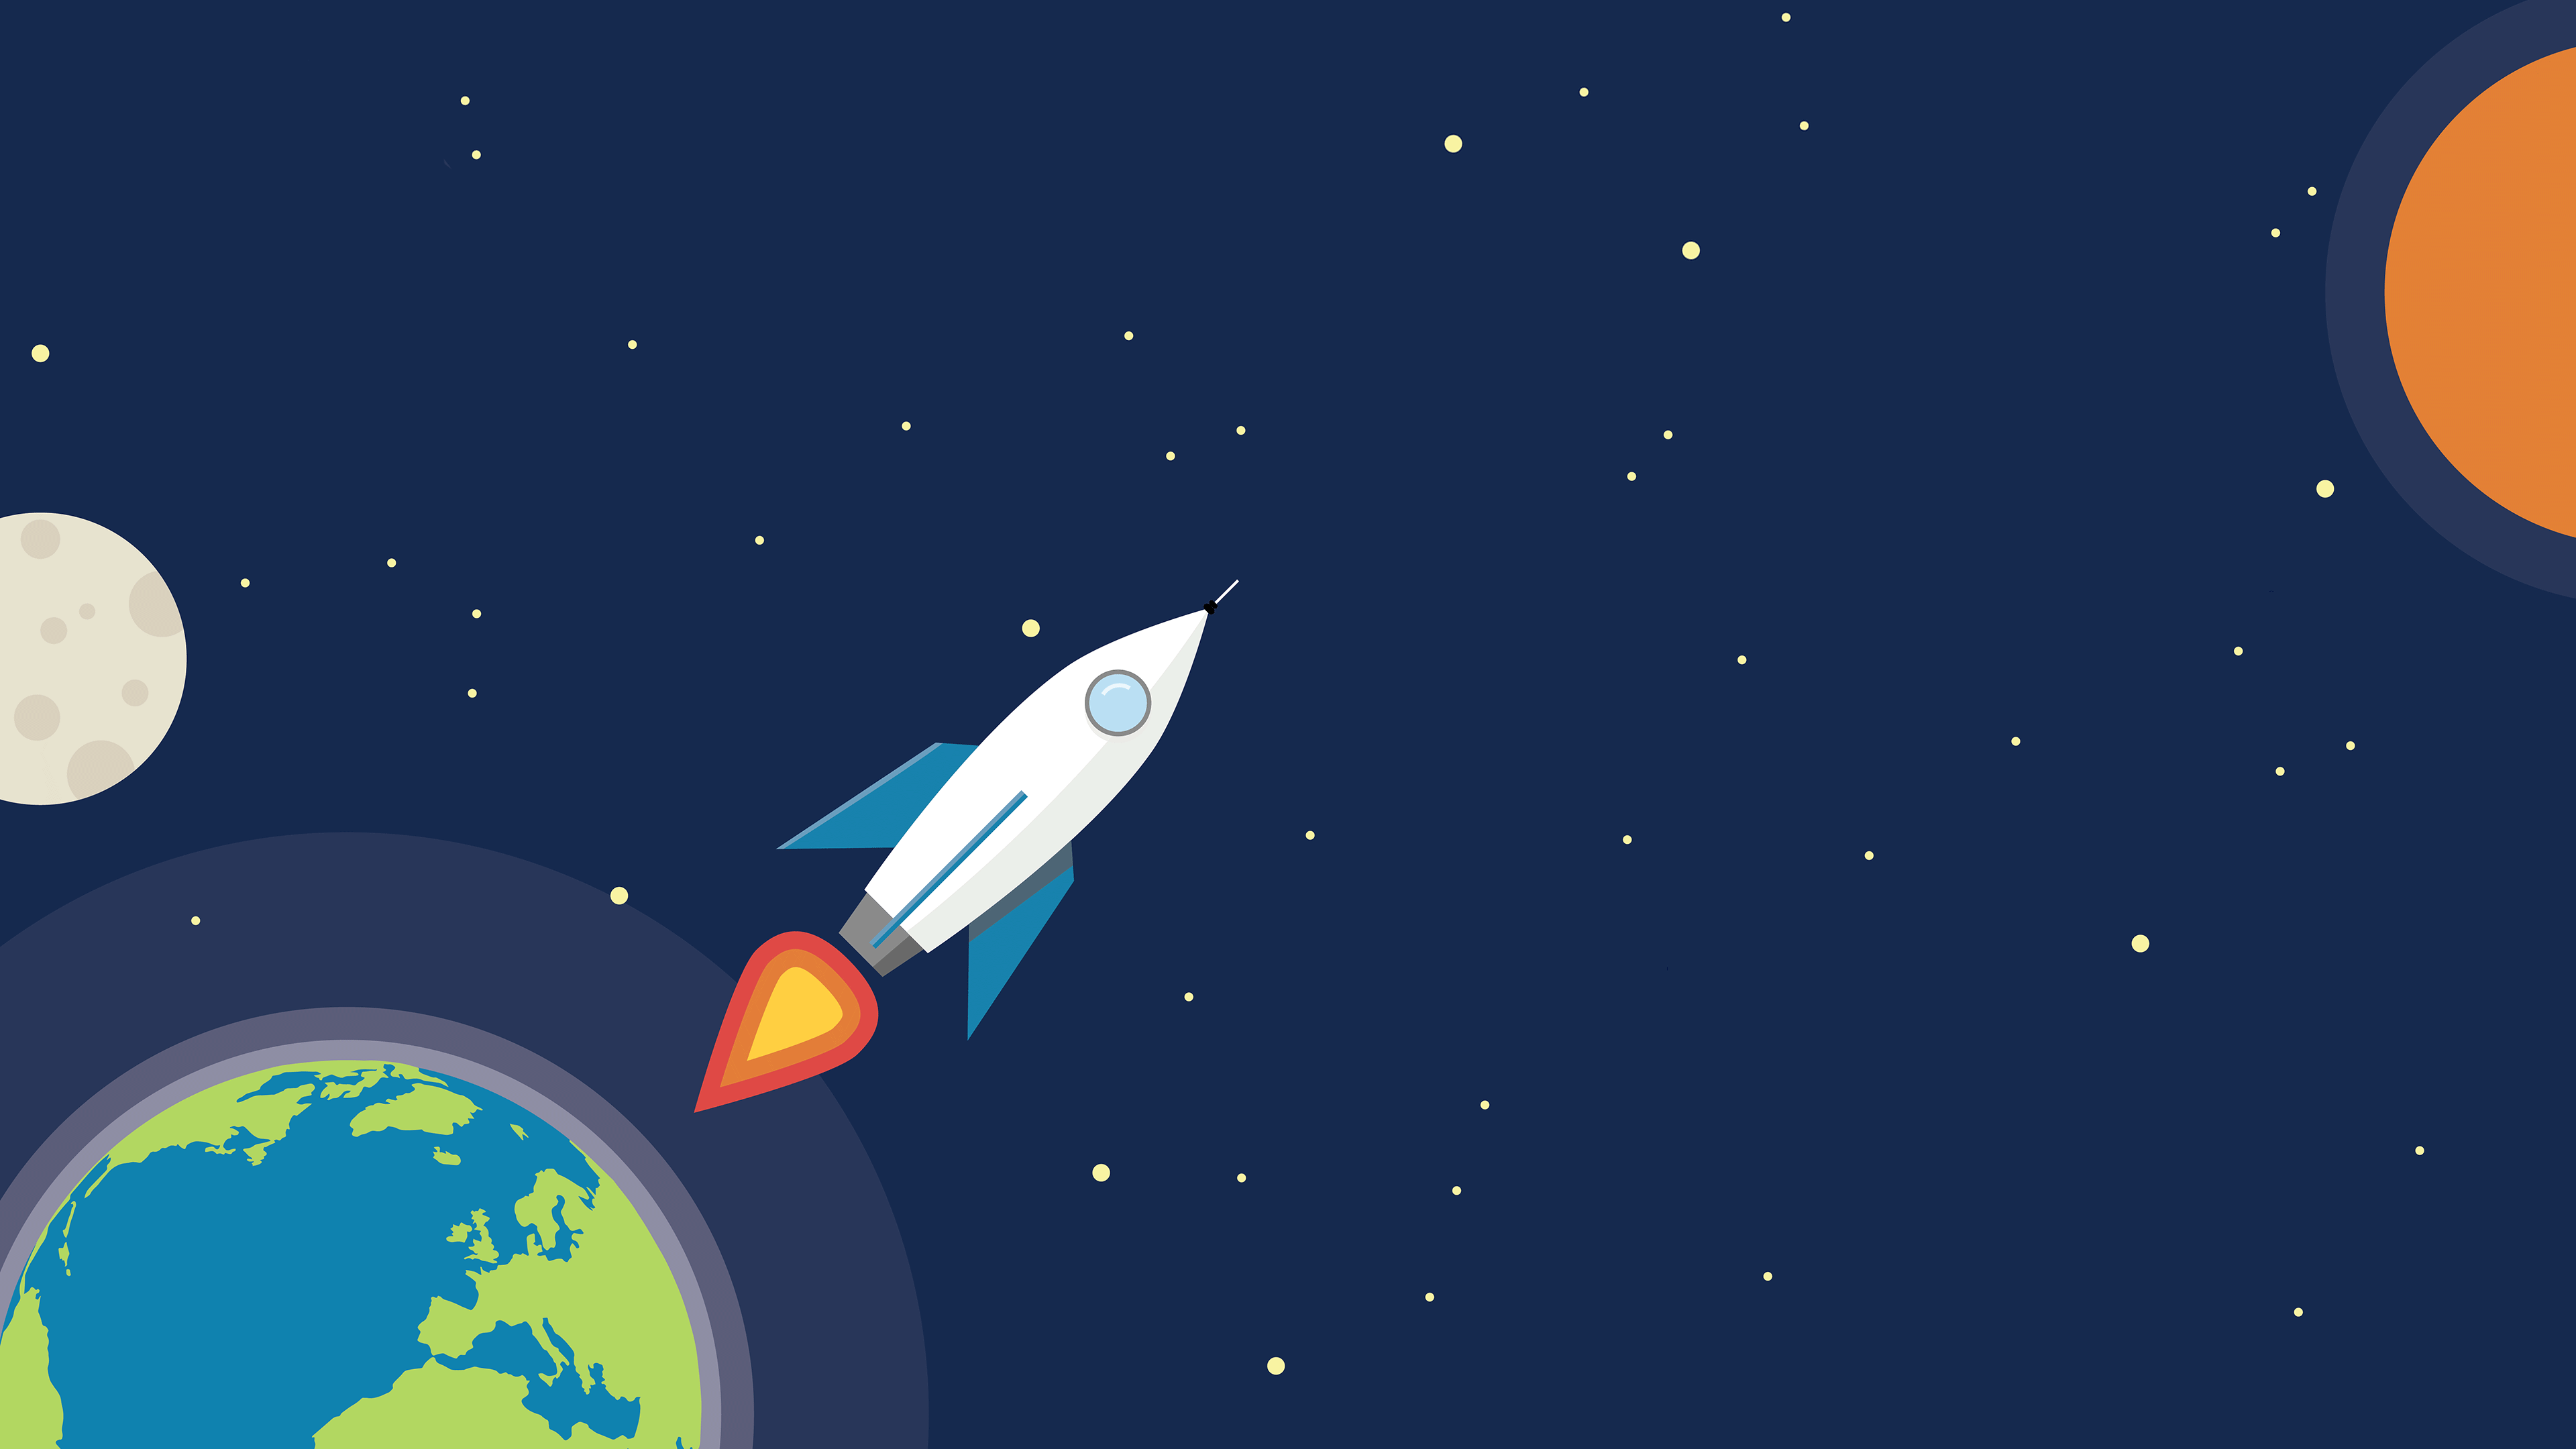 Earth rocket minimalism hd artist 4k wallpapers images for Minimalist space